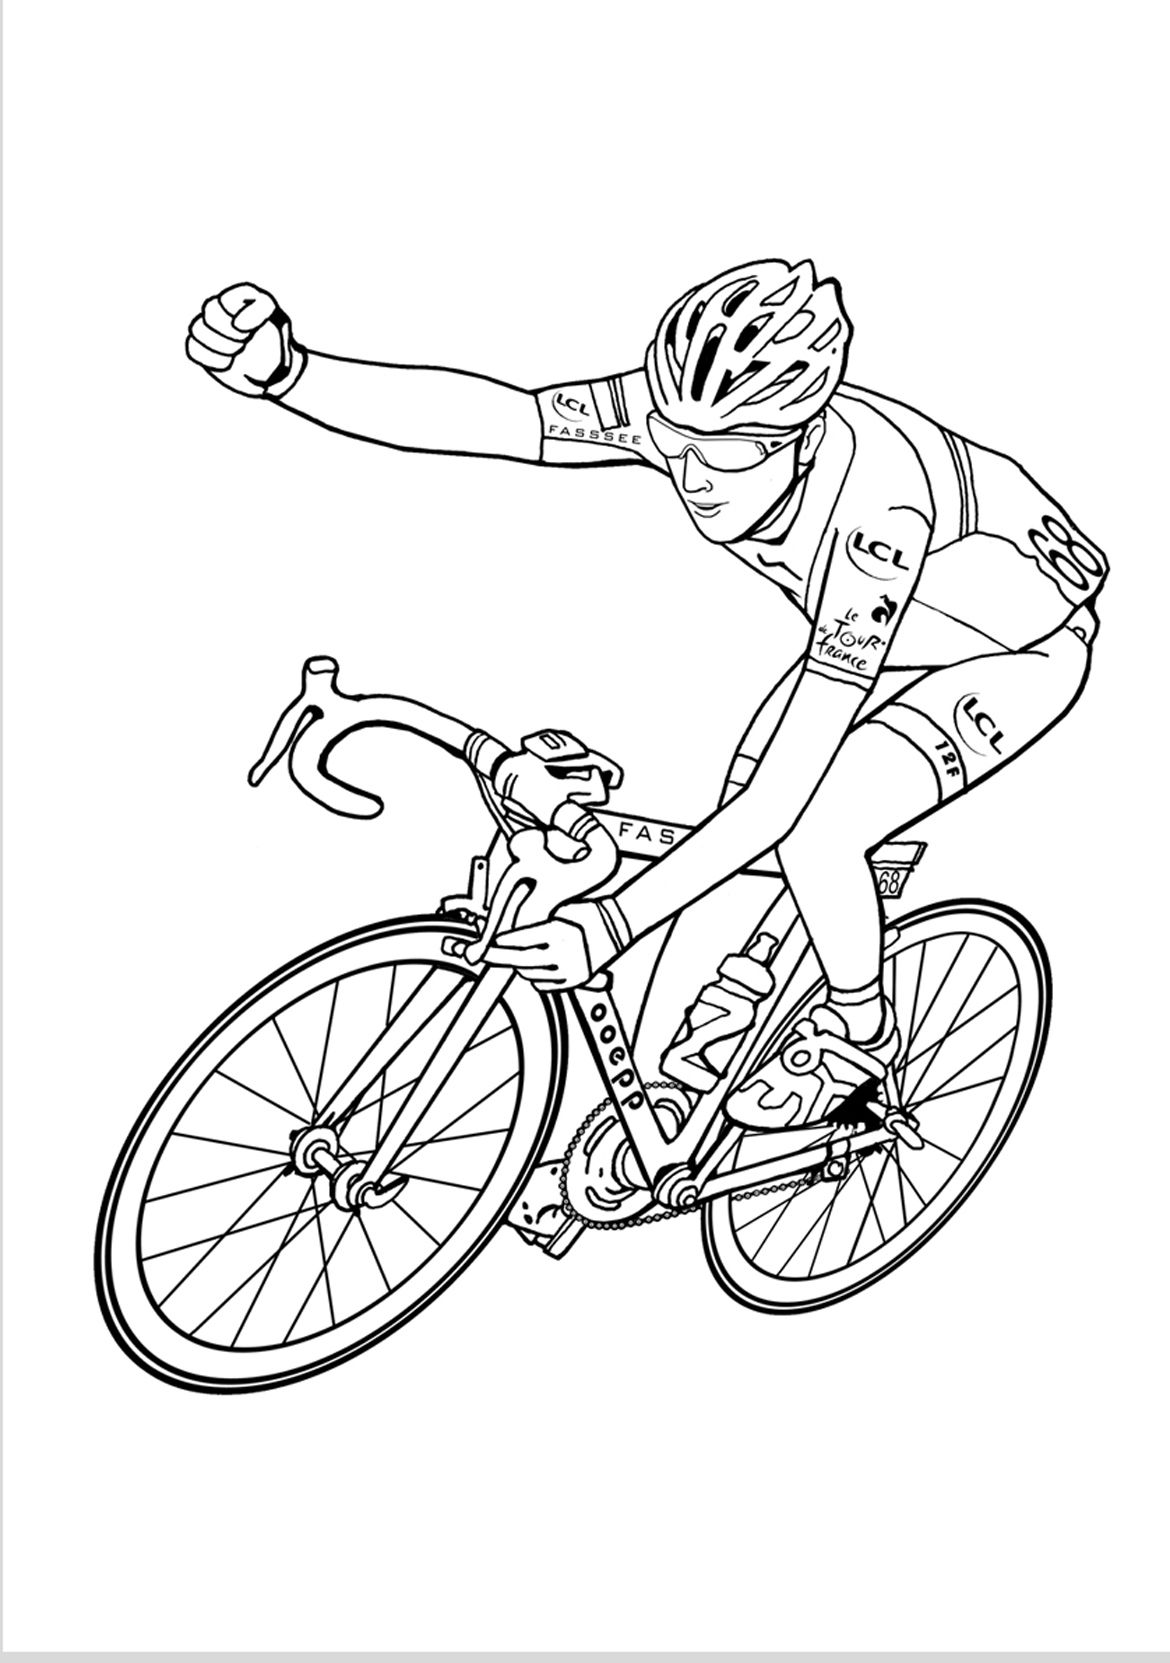 france coloring pages for girls | Pin by The Fridays' Art on Tour de France. Colouring book ...